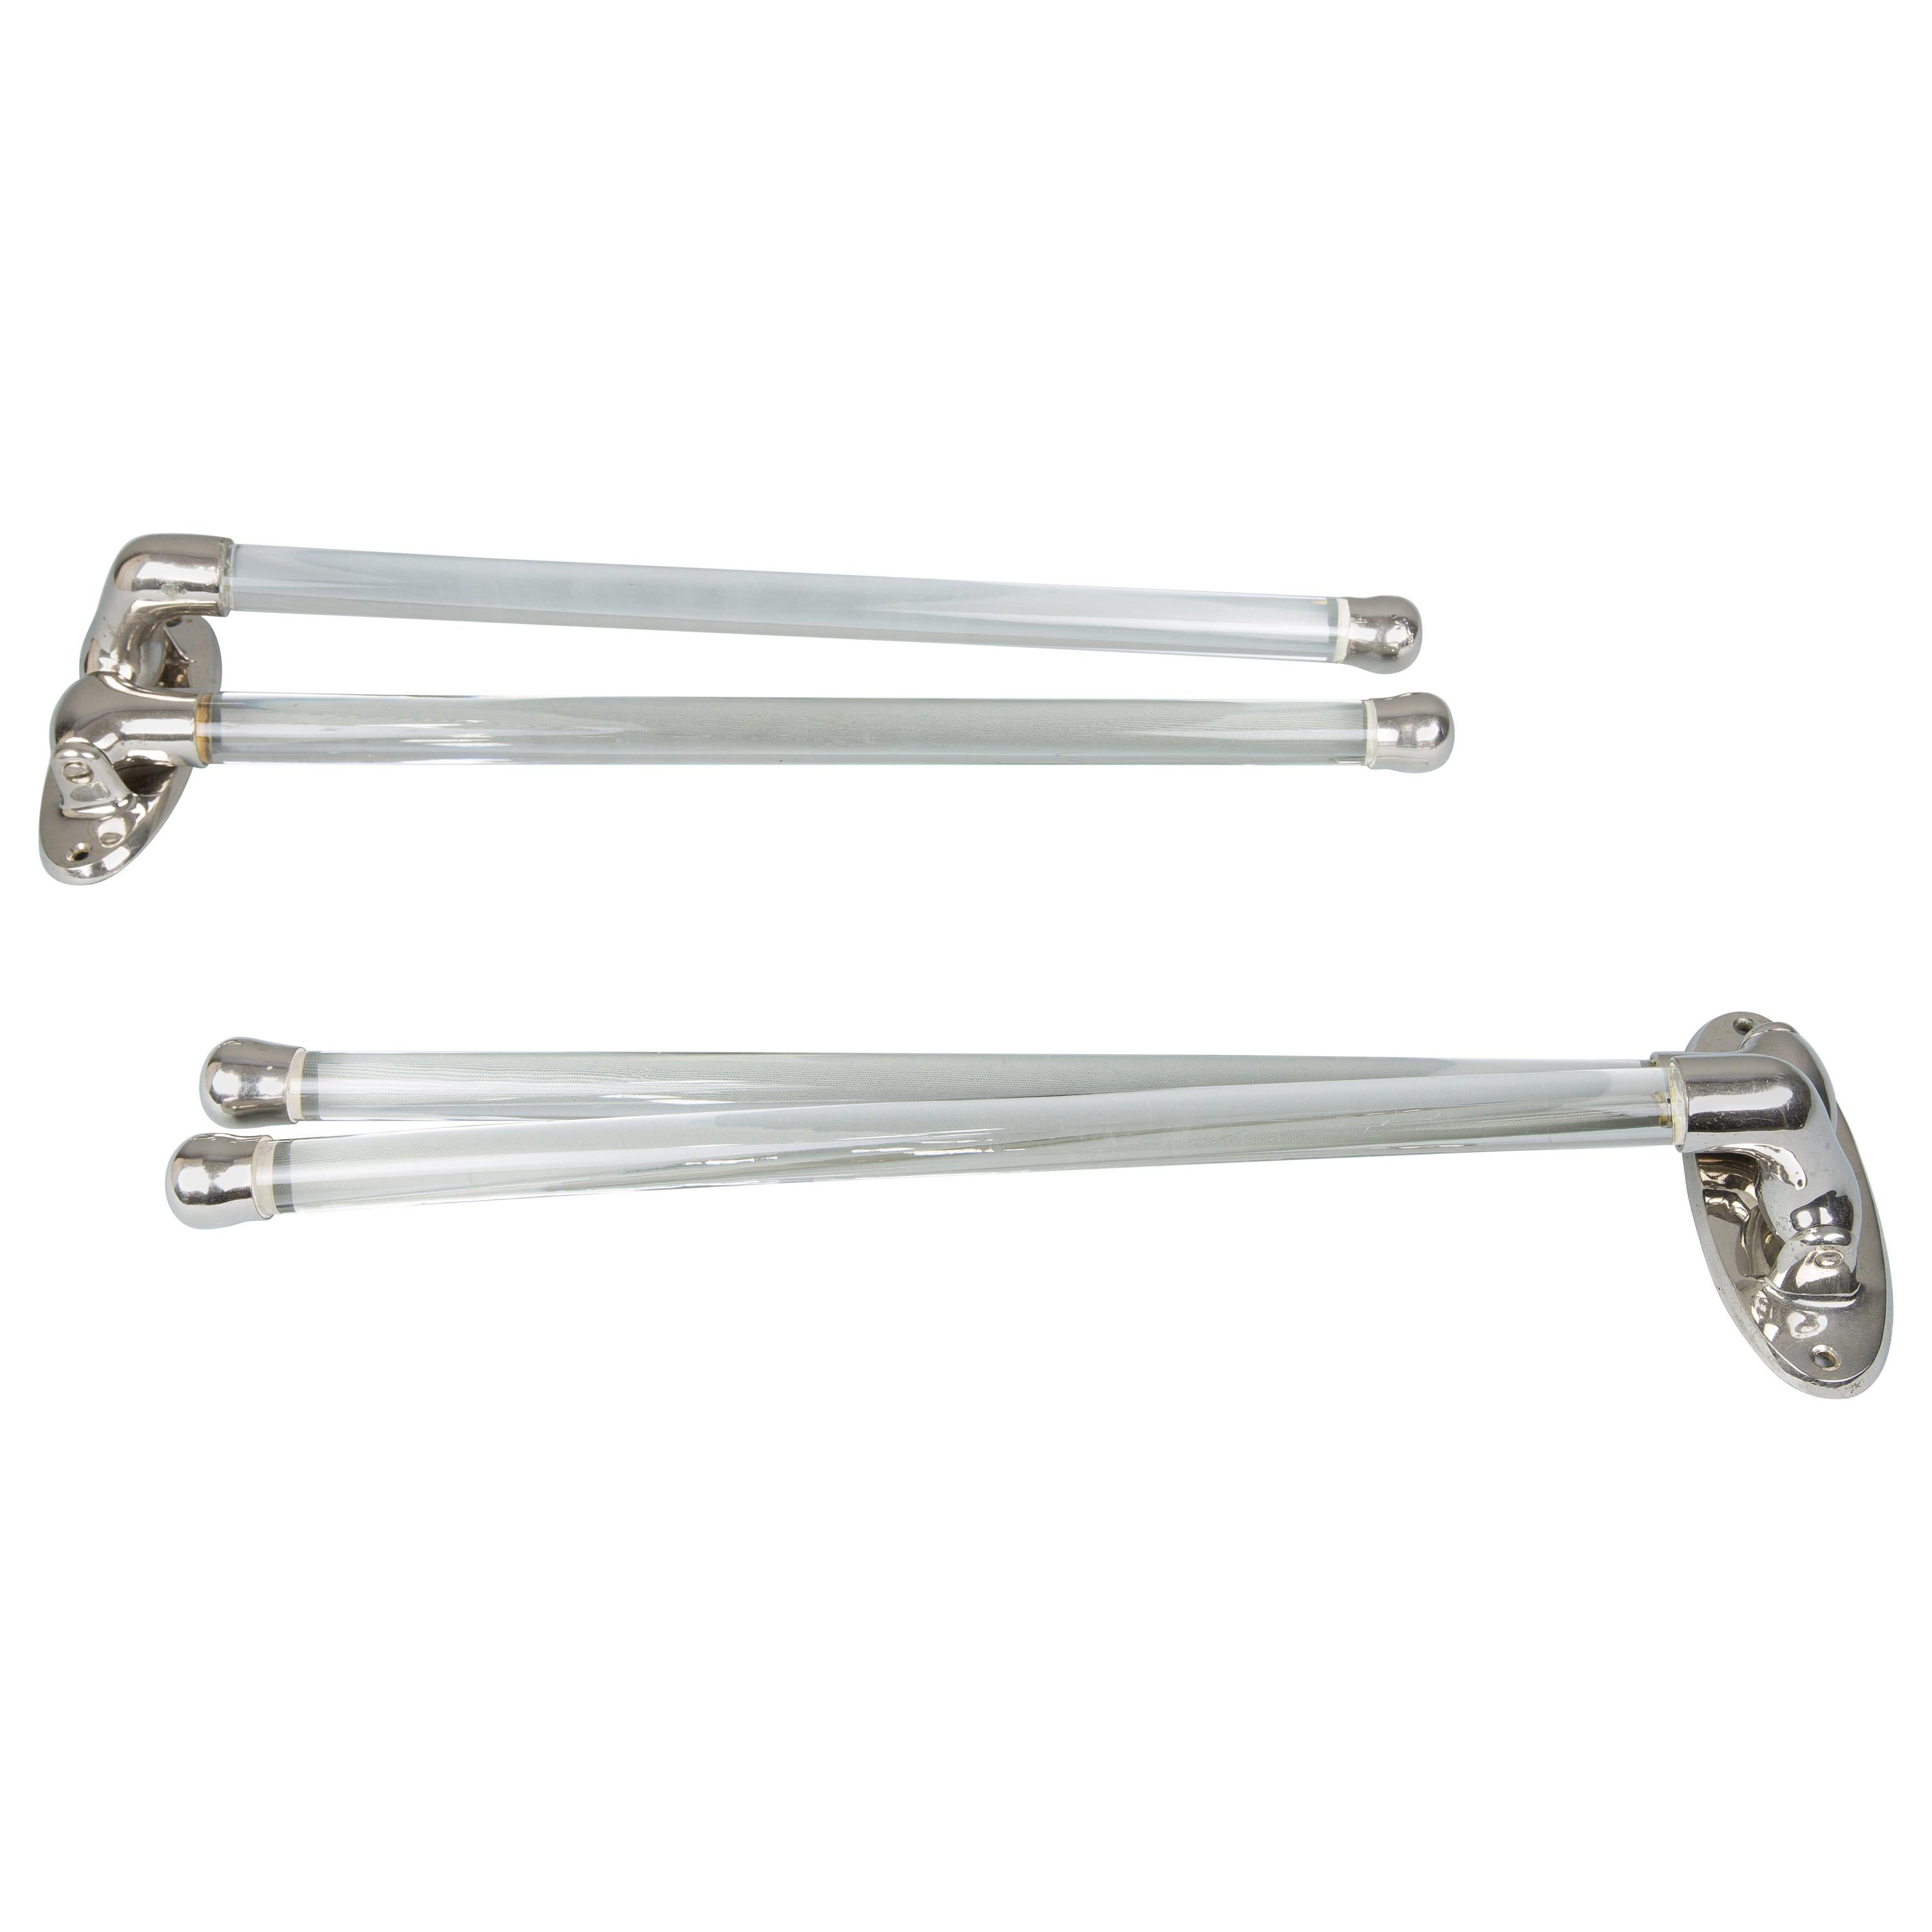 Two Art Deco Nickel-Plated Towel Holder, circa 1920s